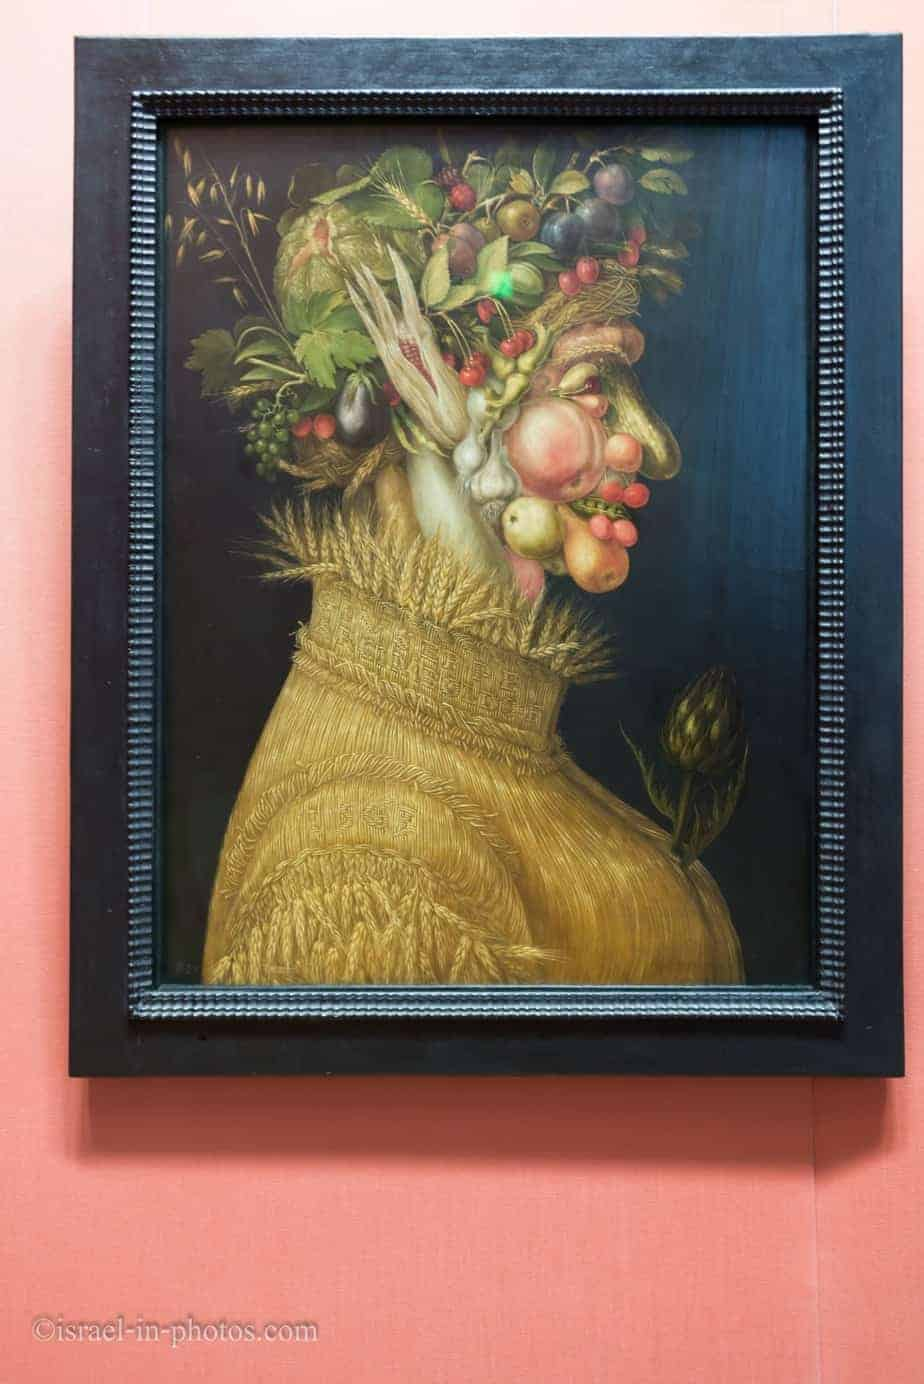 Summer by Giuseppe Arcimboldo in Vienna, Austria's capital